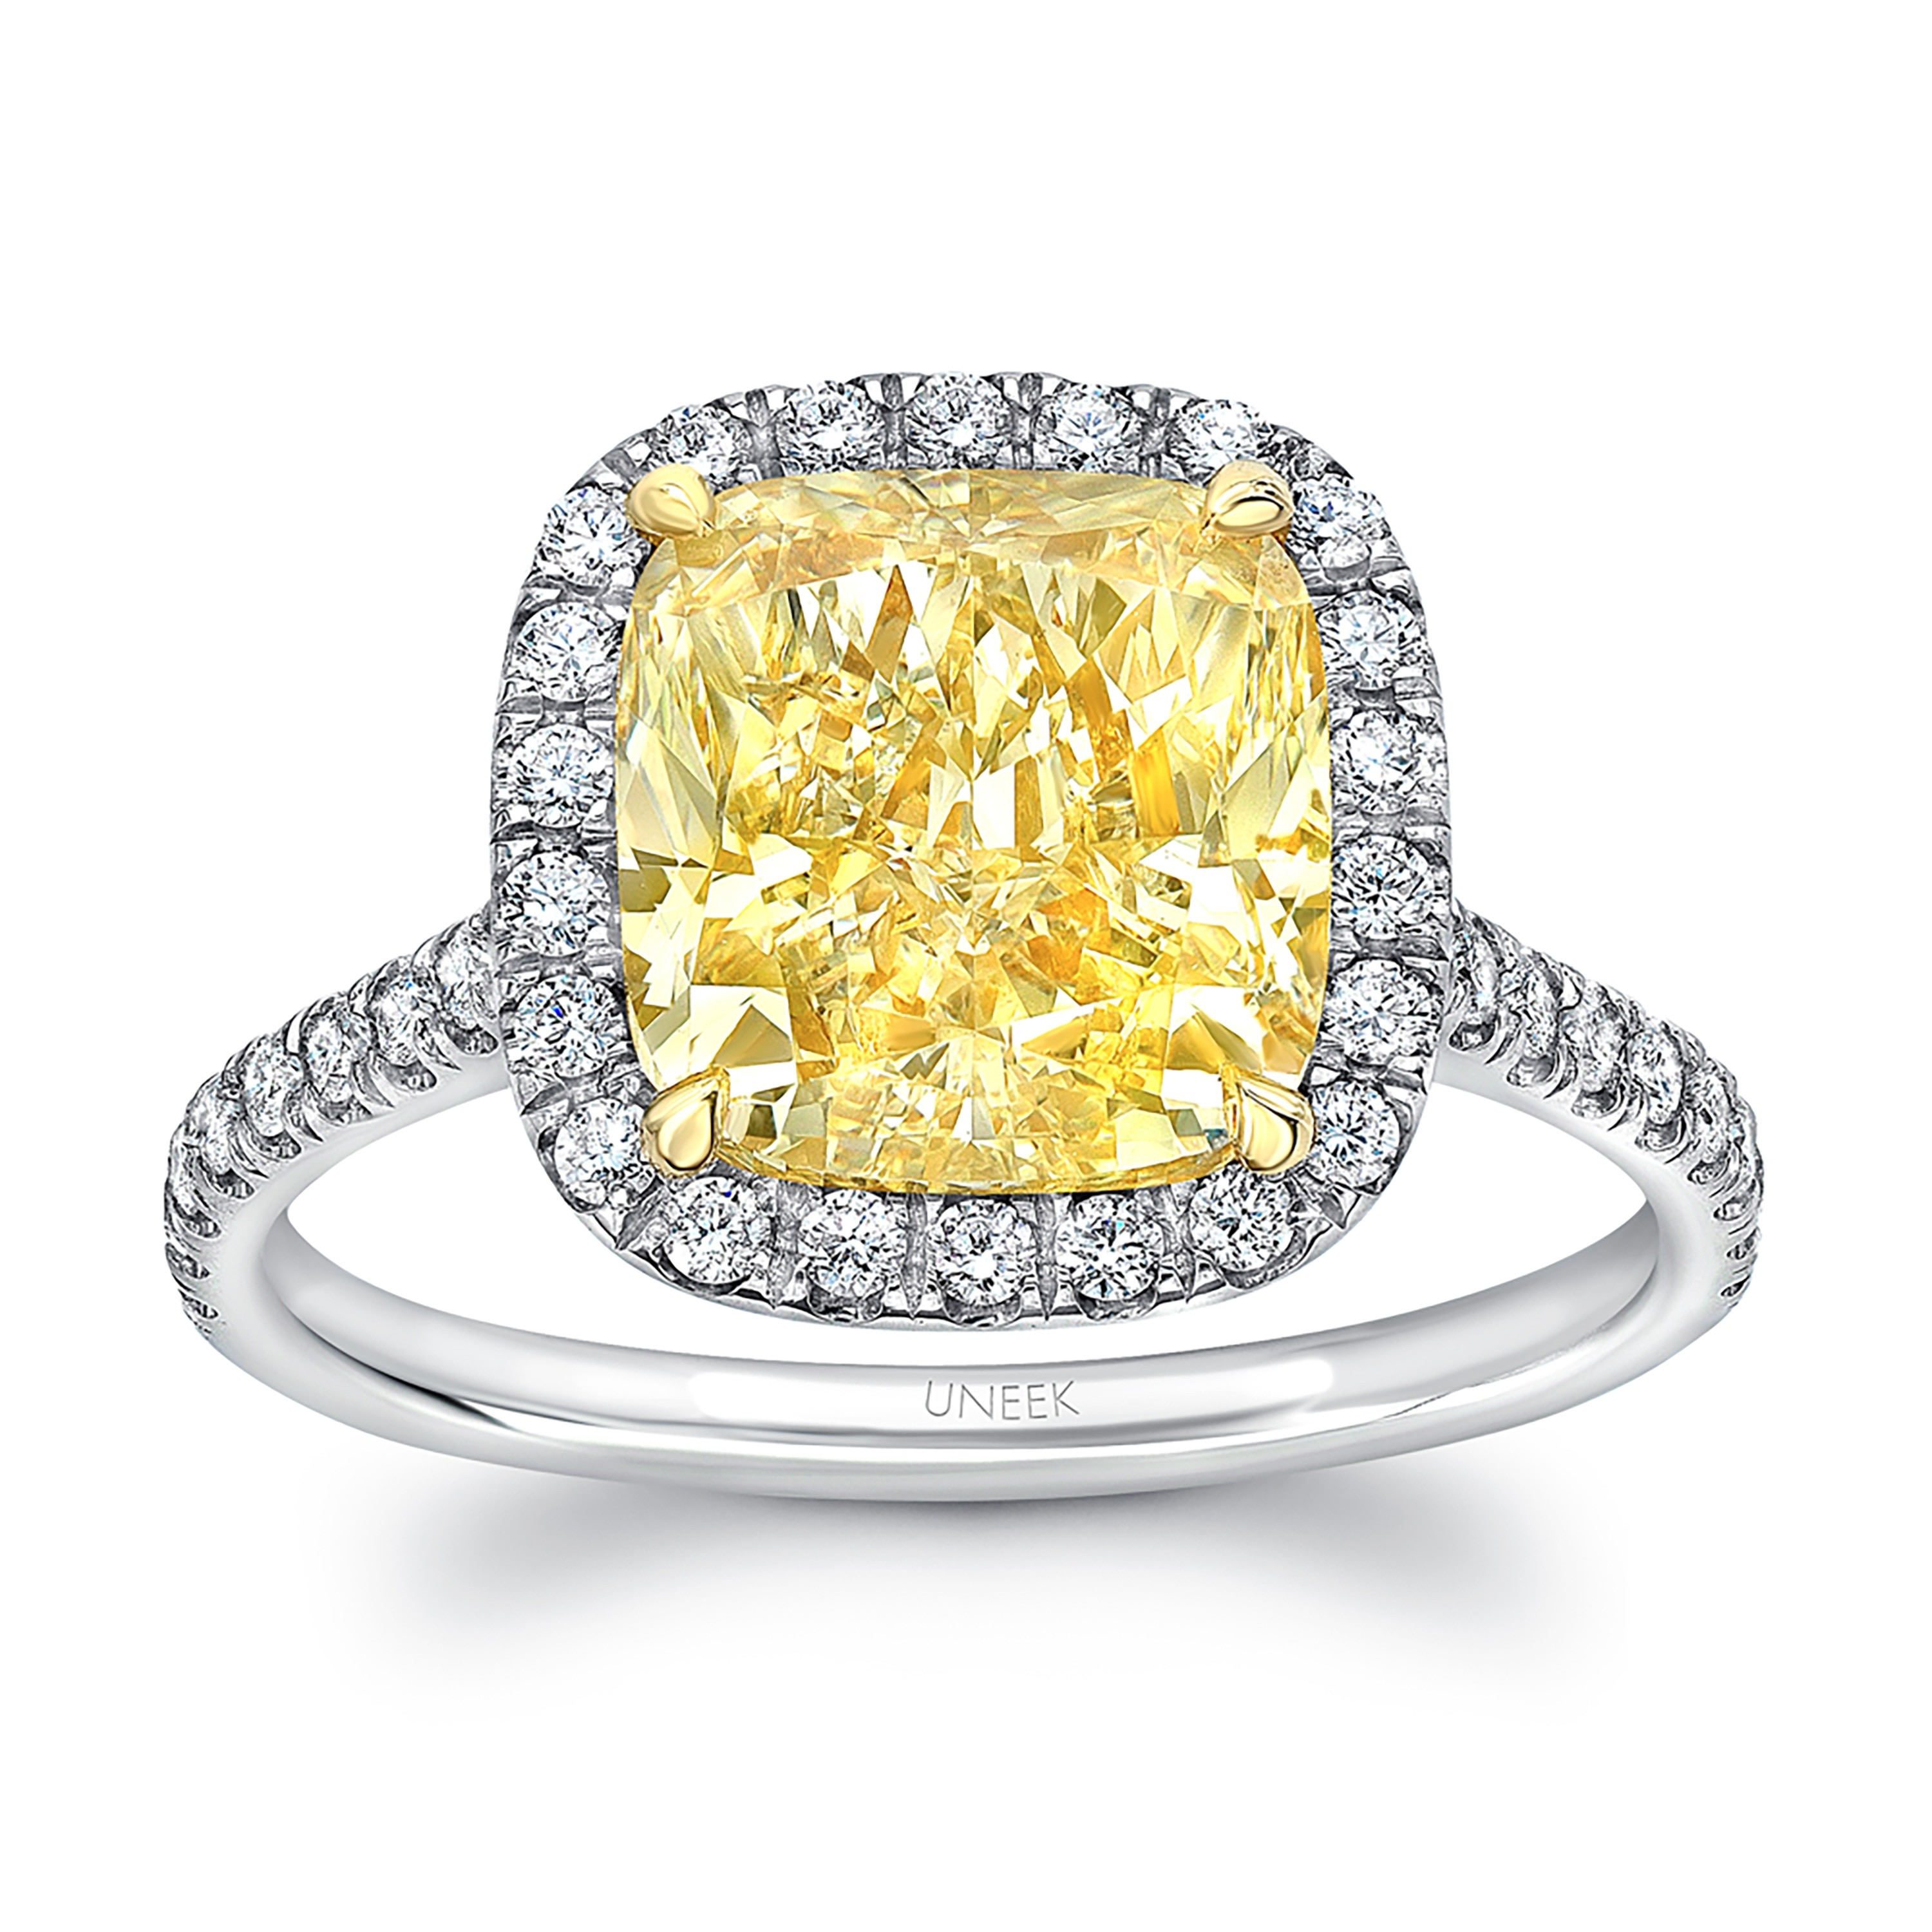 Uneek Classic Cushion Cut Fancy Yellow Diamond Halo Engagement Ring